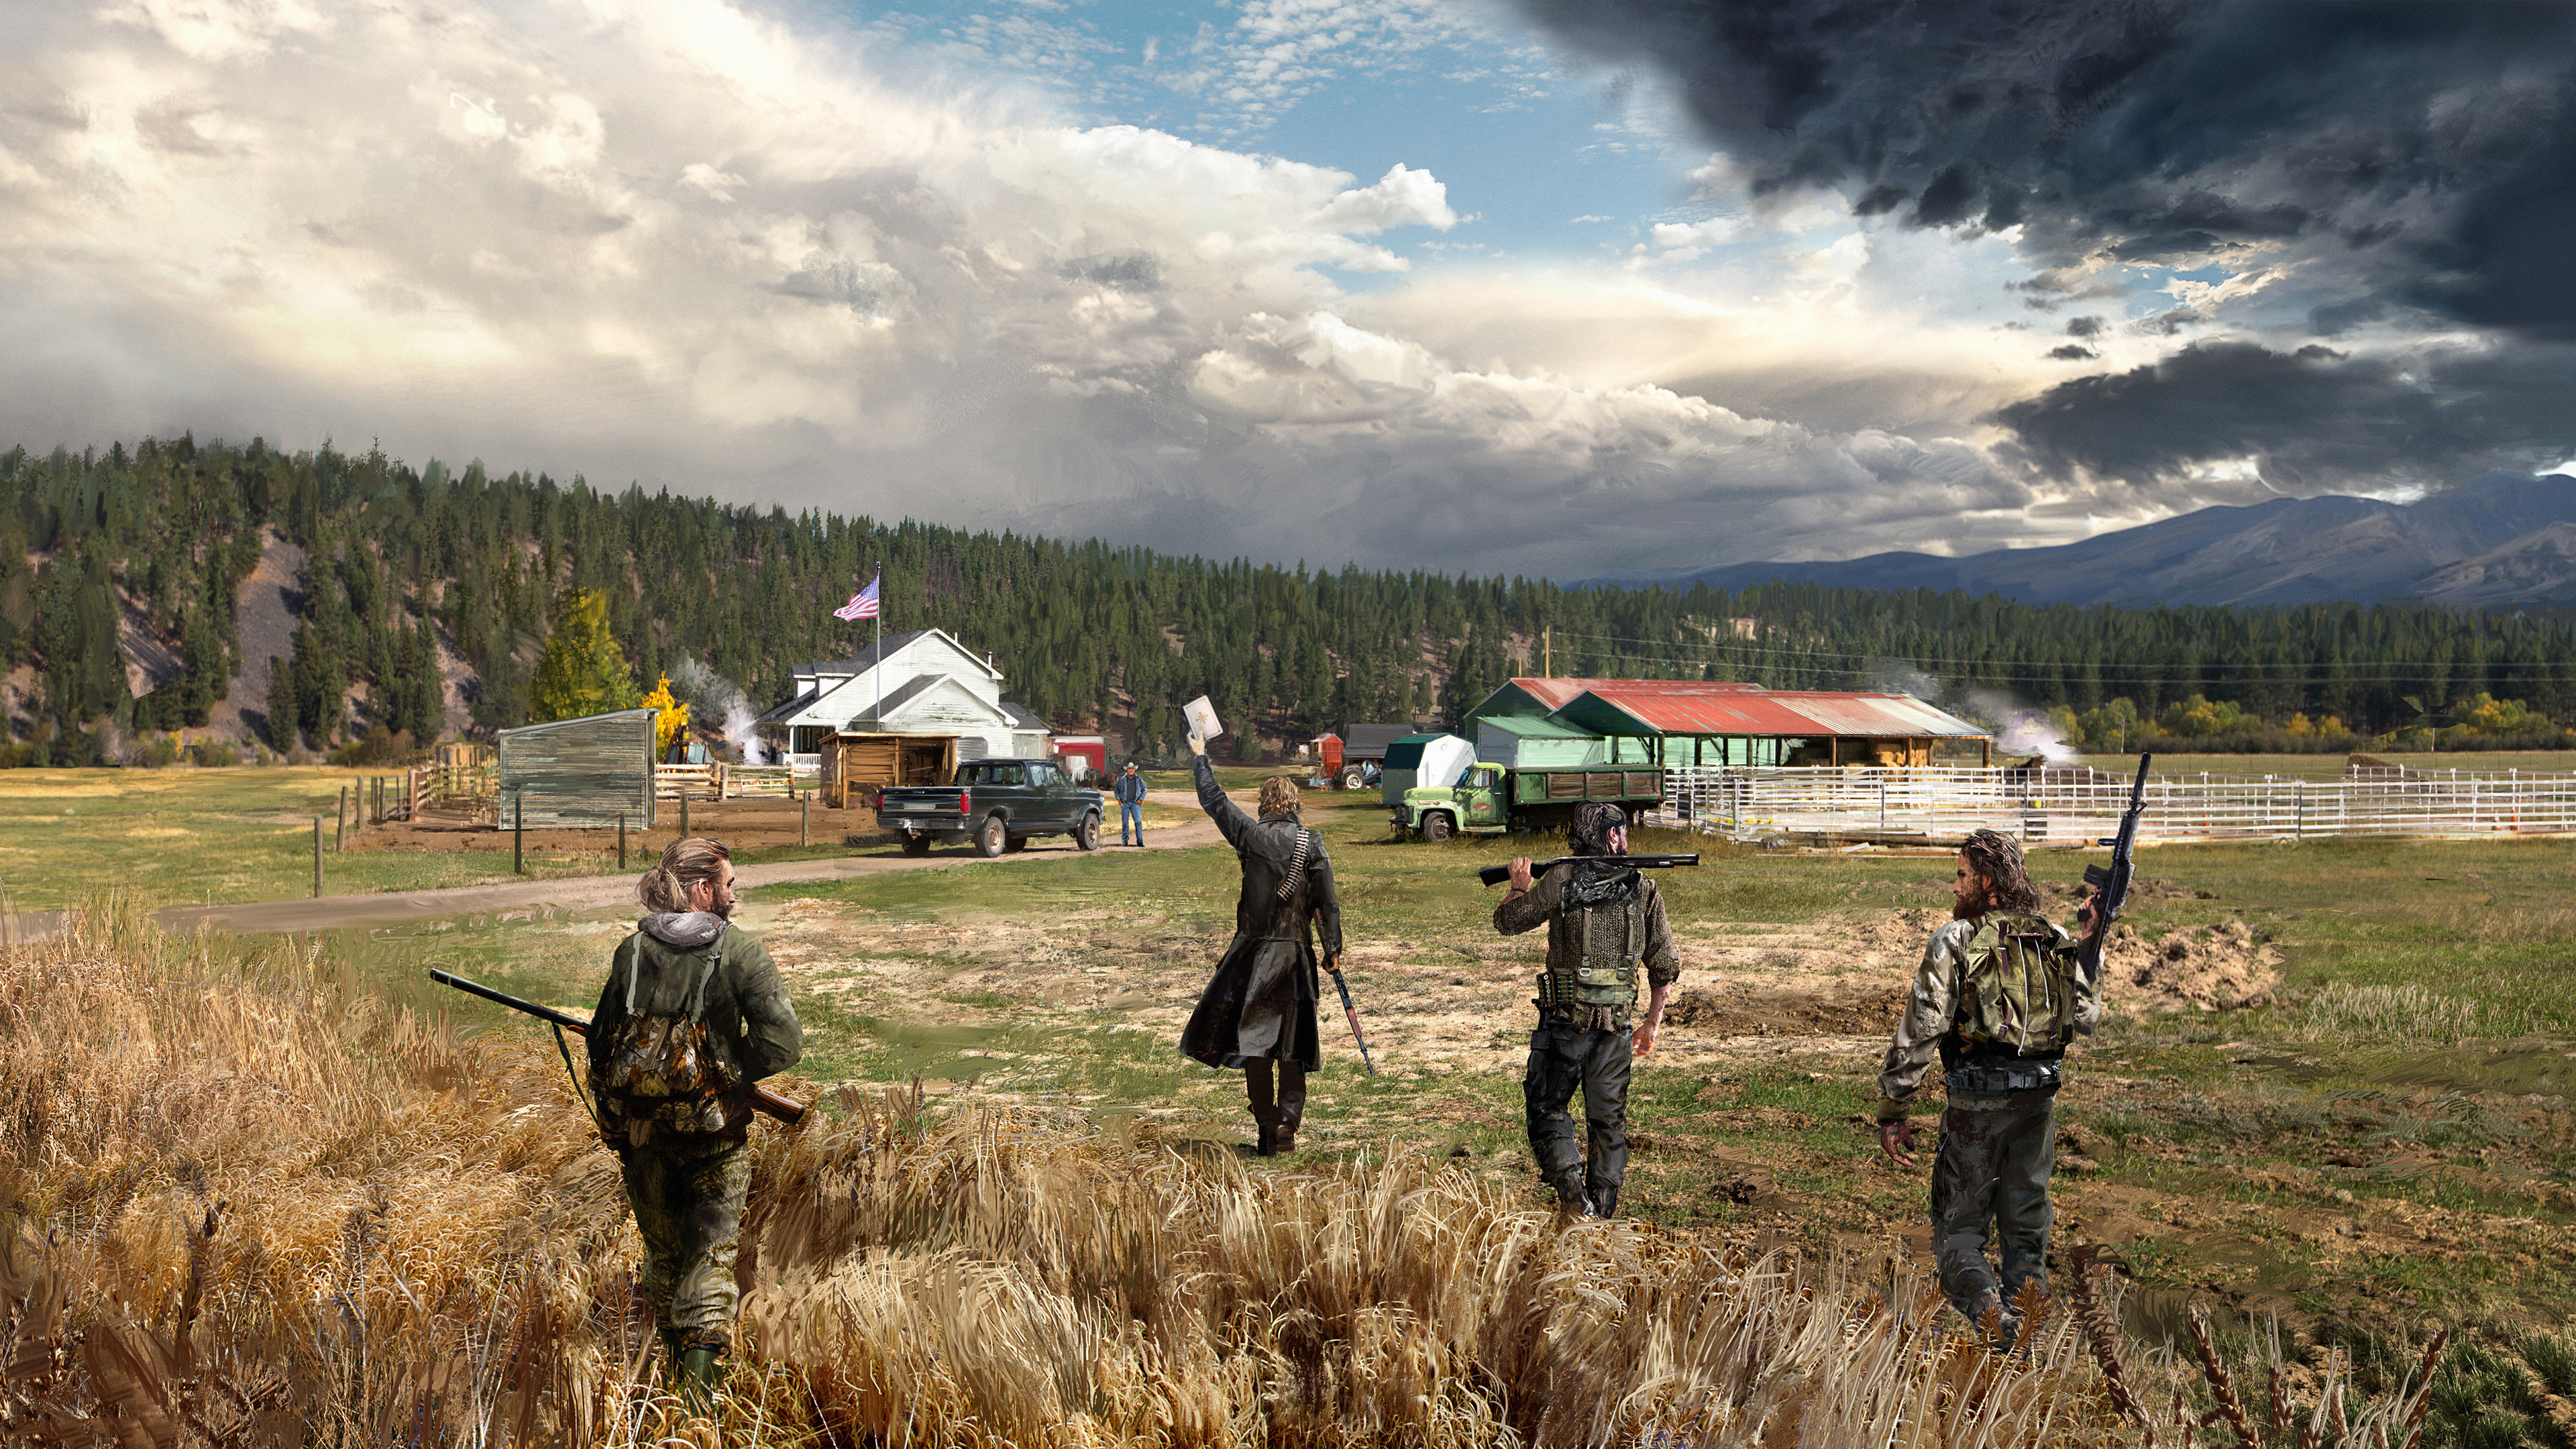 2018 Far Cry 5 4k Hd Games 4k Wallpapers Images Backgrounds